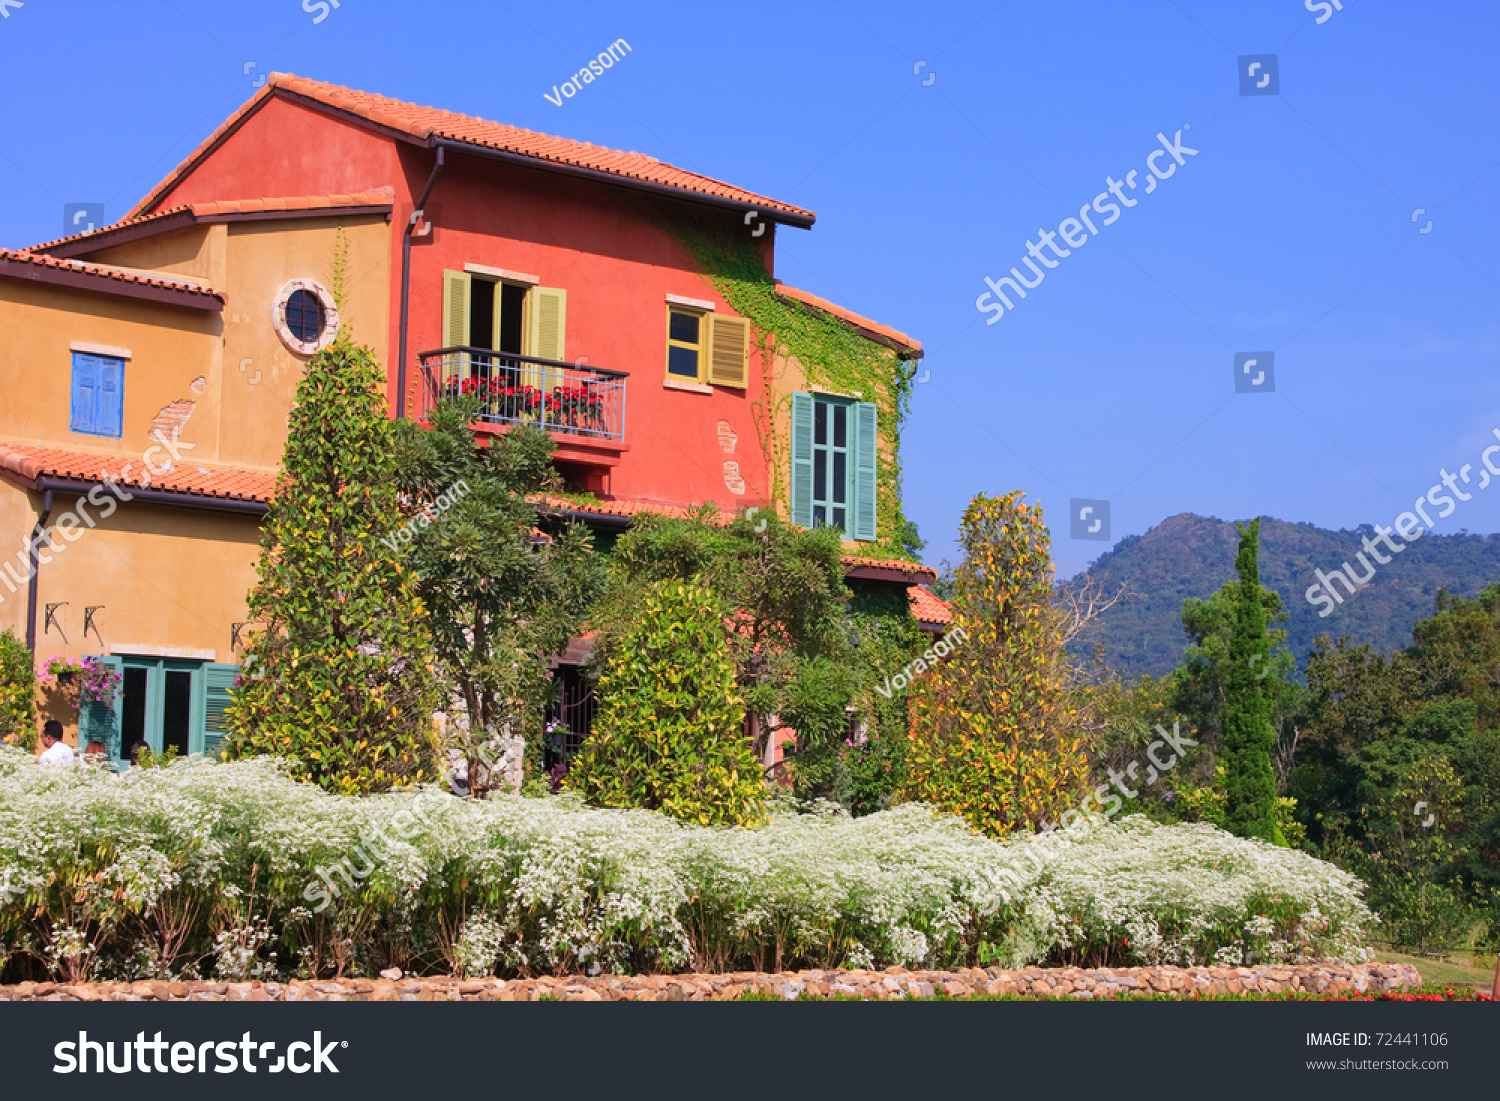 Colorful house behind trees stock photo 72441106 for Colorful tree house